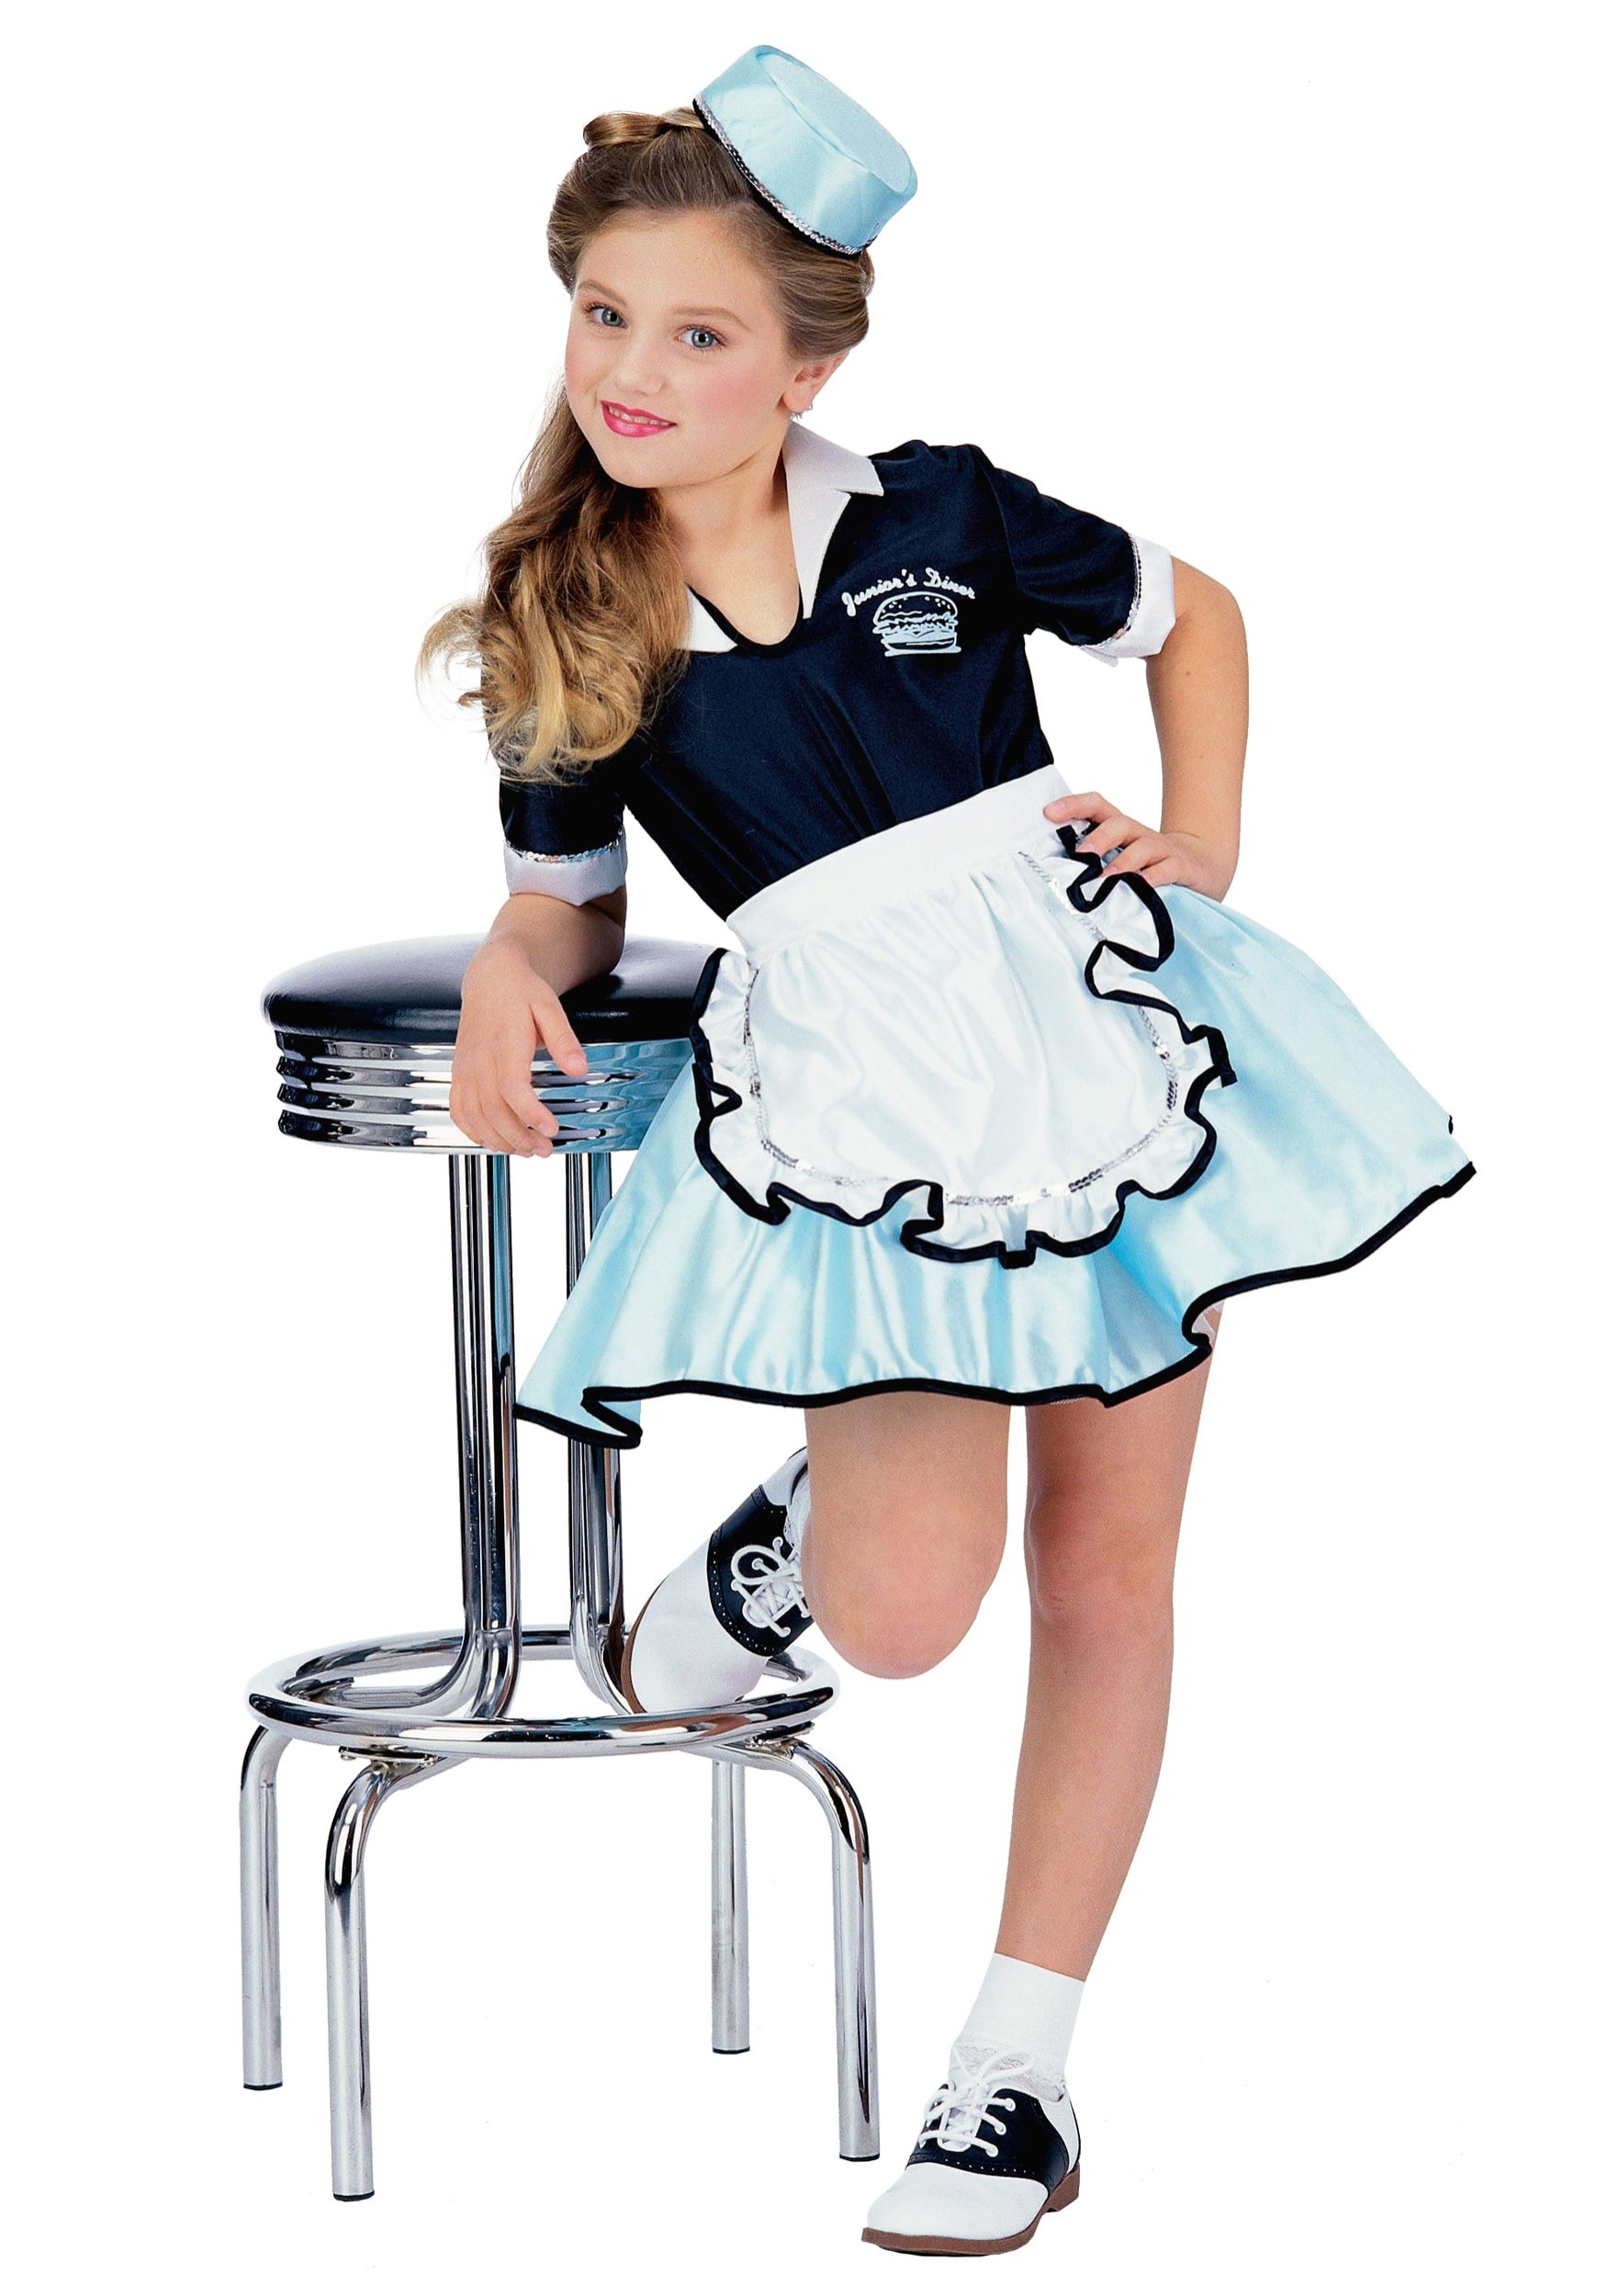 Girls 50s Car Hop Waitress Costume  sc 1 st  Halloween Costume Ideas & Kids Car Hop Girl Costume - Kids Car Hop 50s Costumes